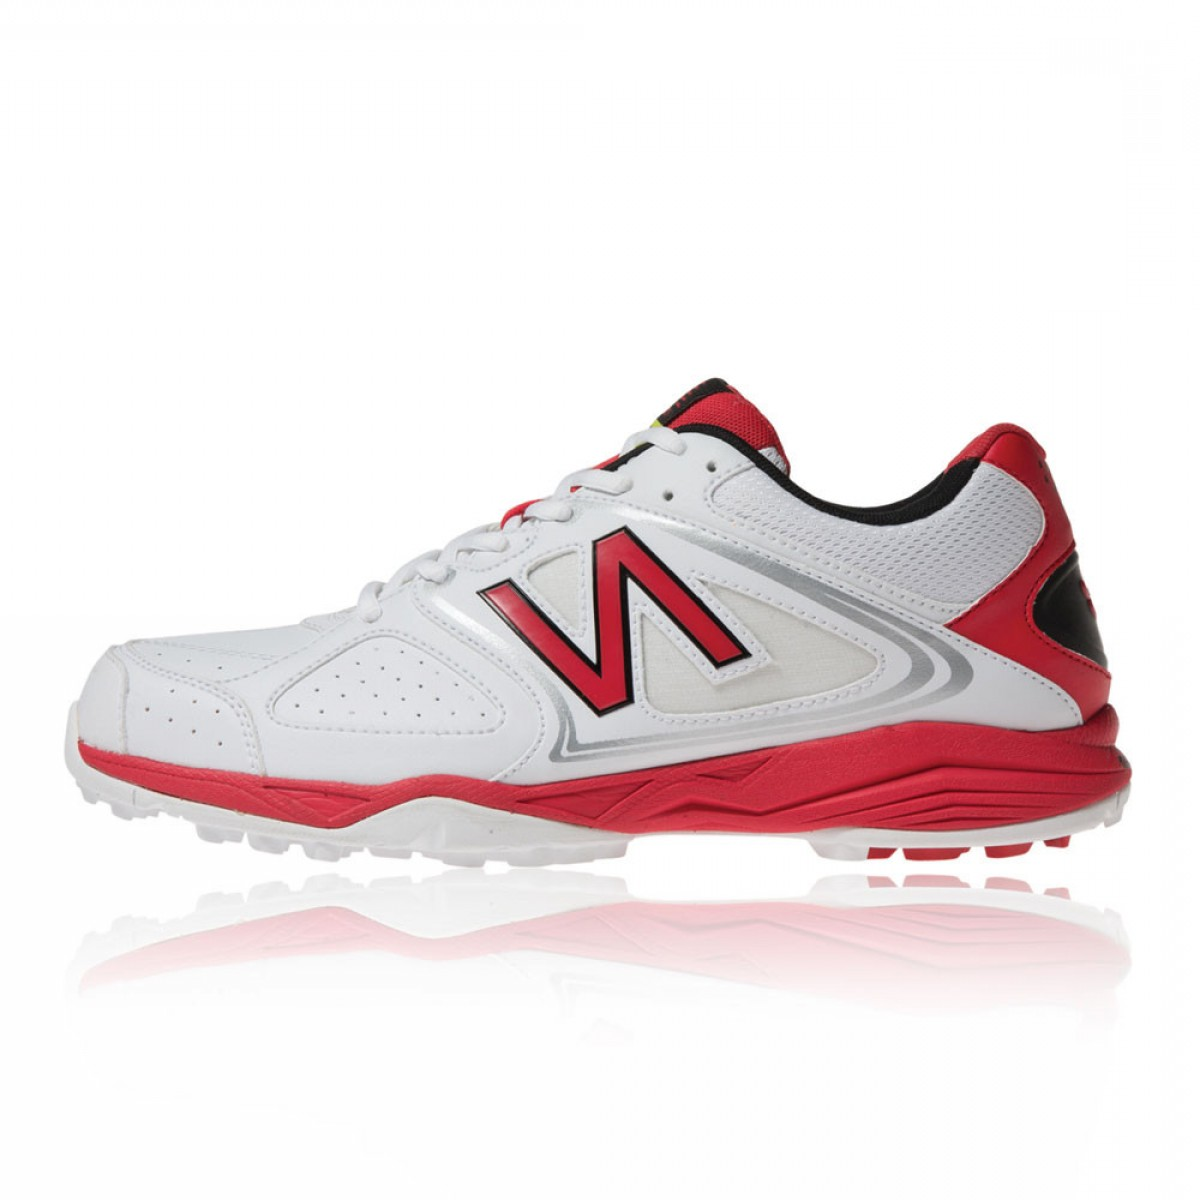 New Balance Vector: Preferences White Adidas Mens Adipower Vector Cricket Shoes Ss Hp